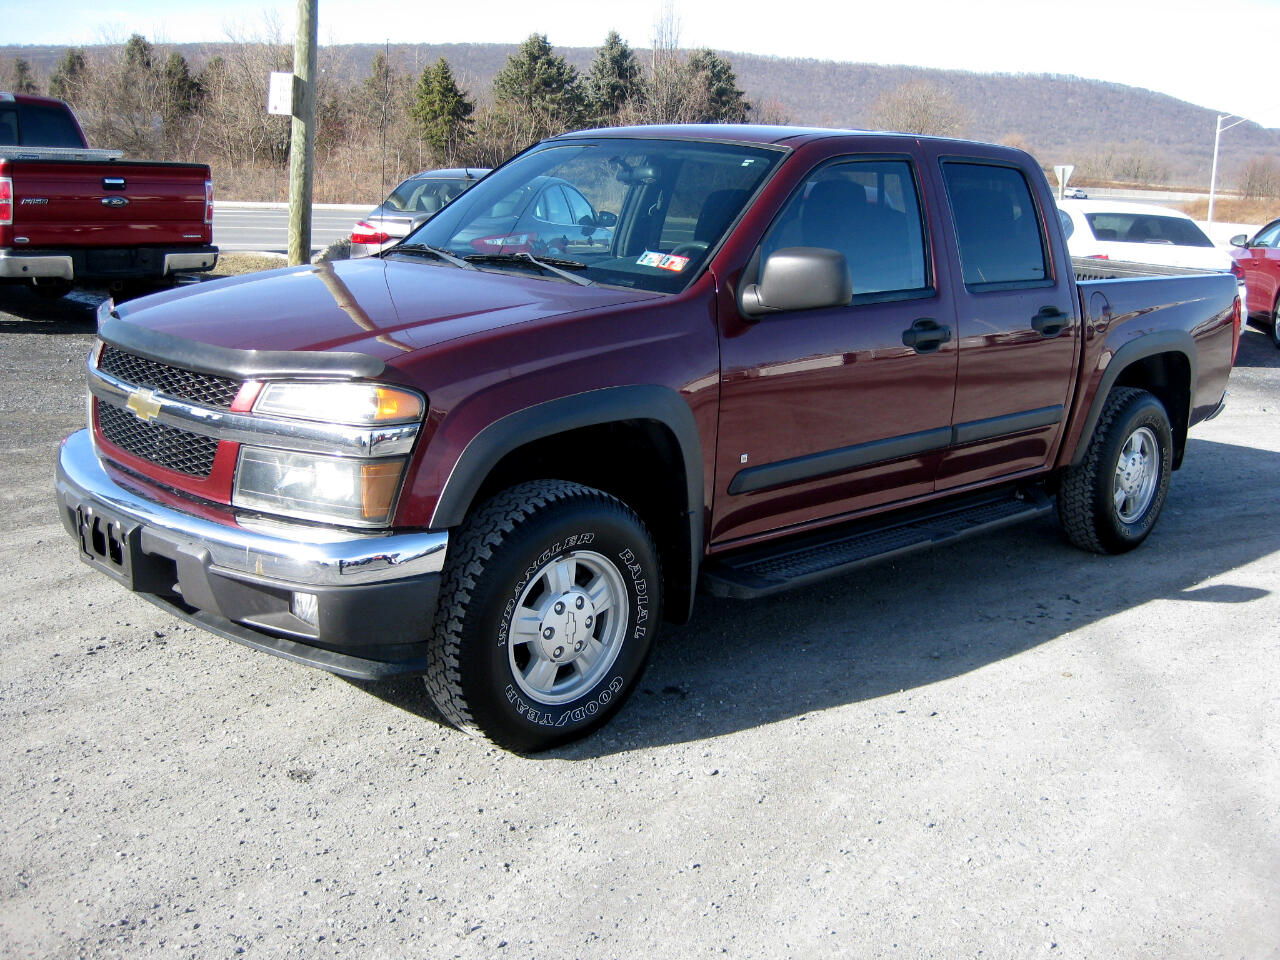 2007 Chevrolet Colorado LT Crew Cab 4WD Short Box